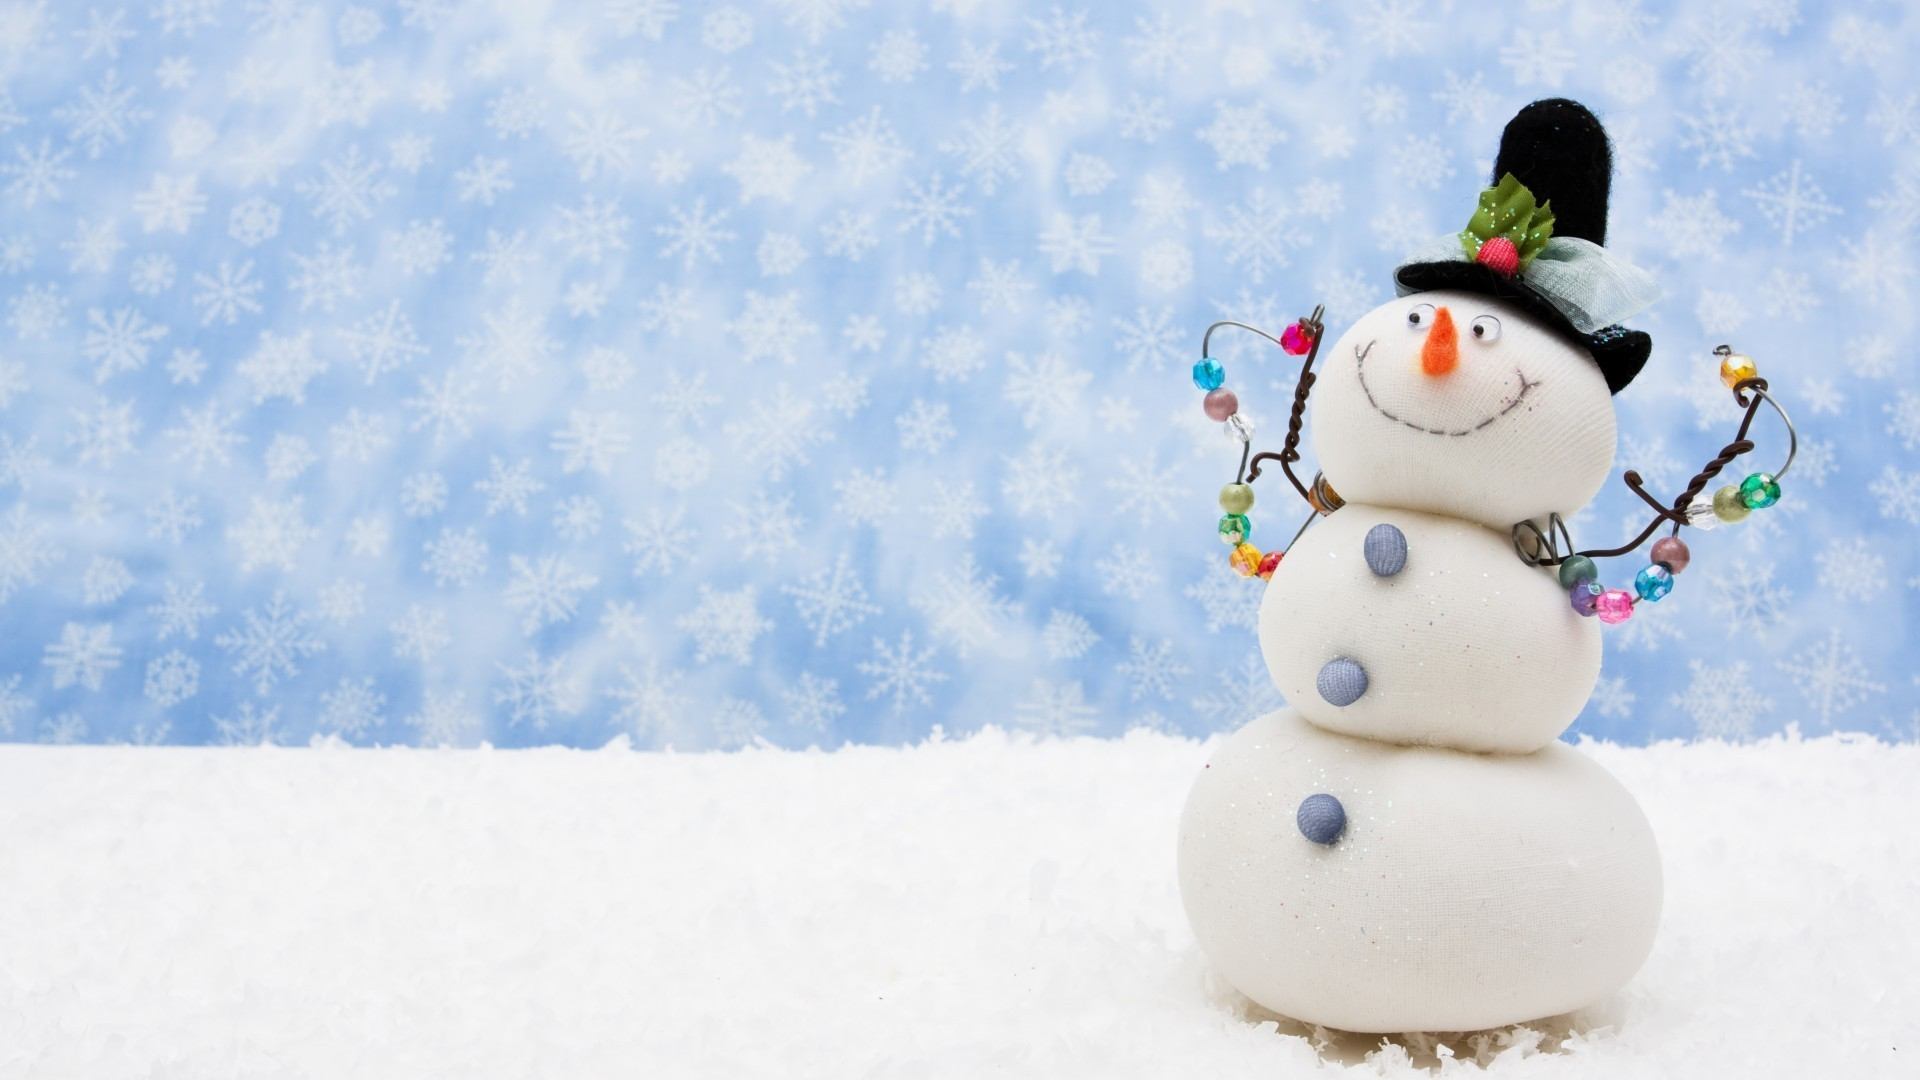 Snowman Free Wallpapers